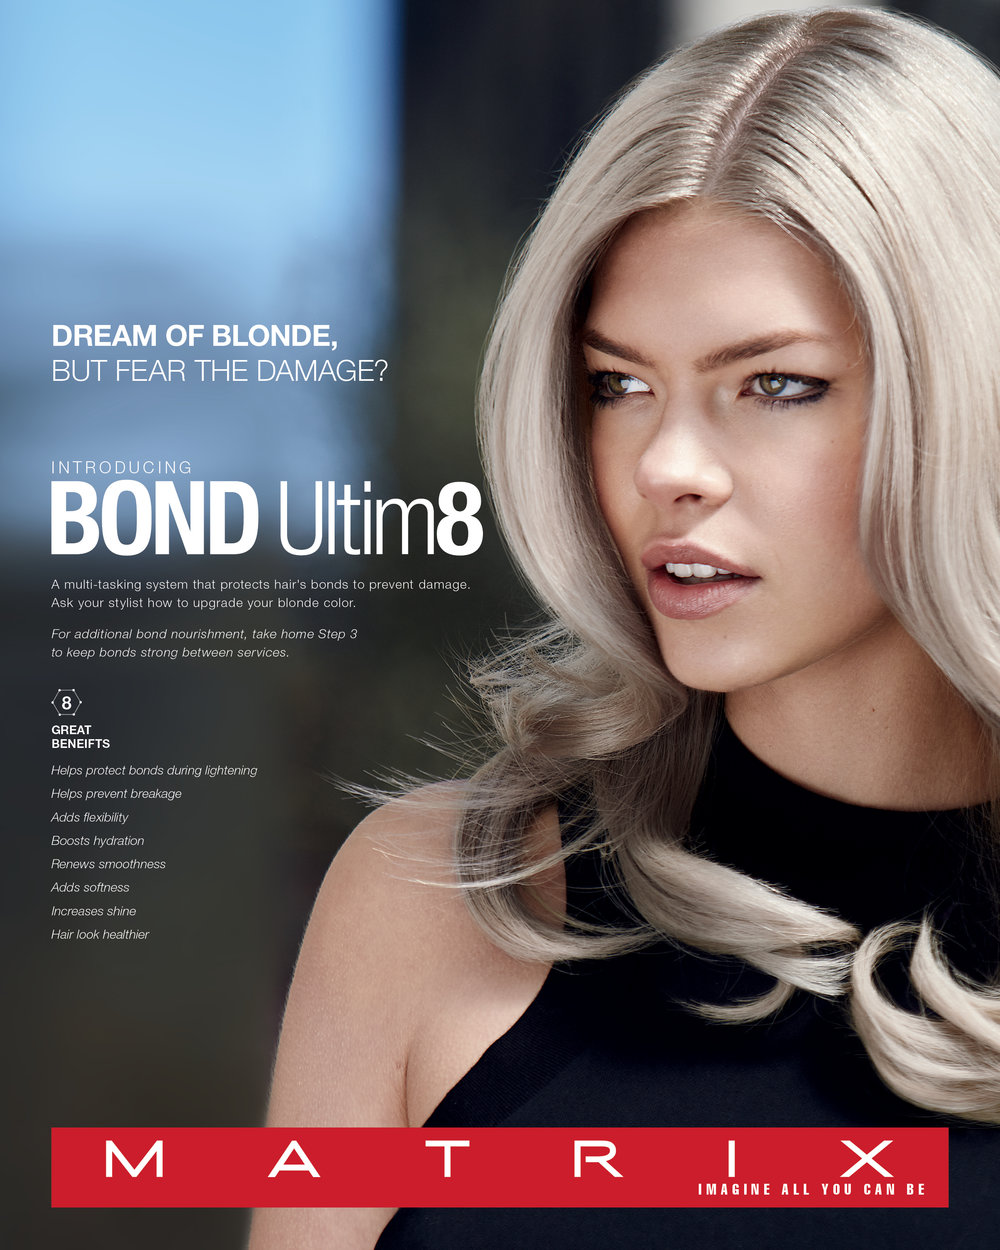 BOND_ULTIM8_SALON_POSTERS_BEAUTY.jpg